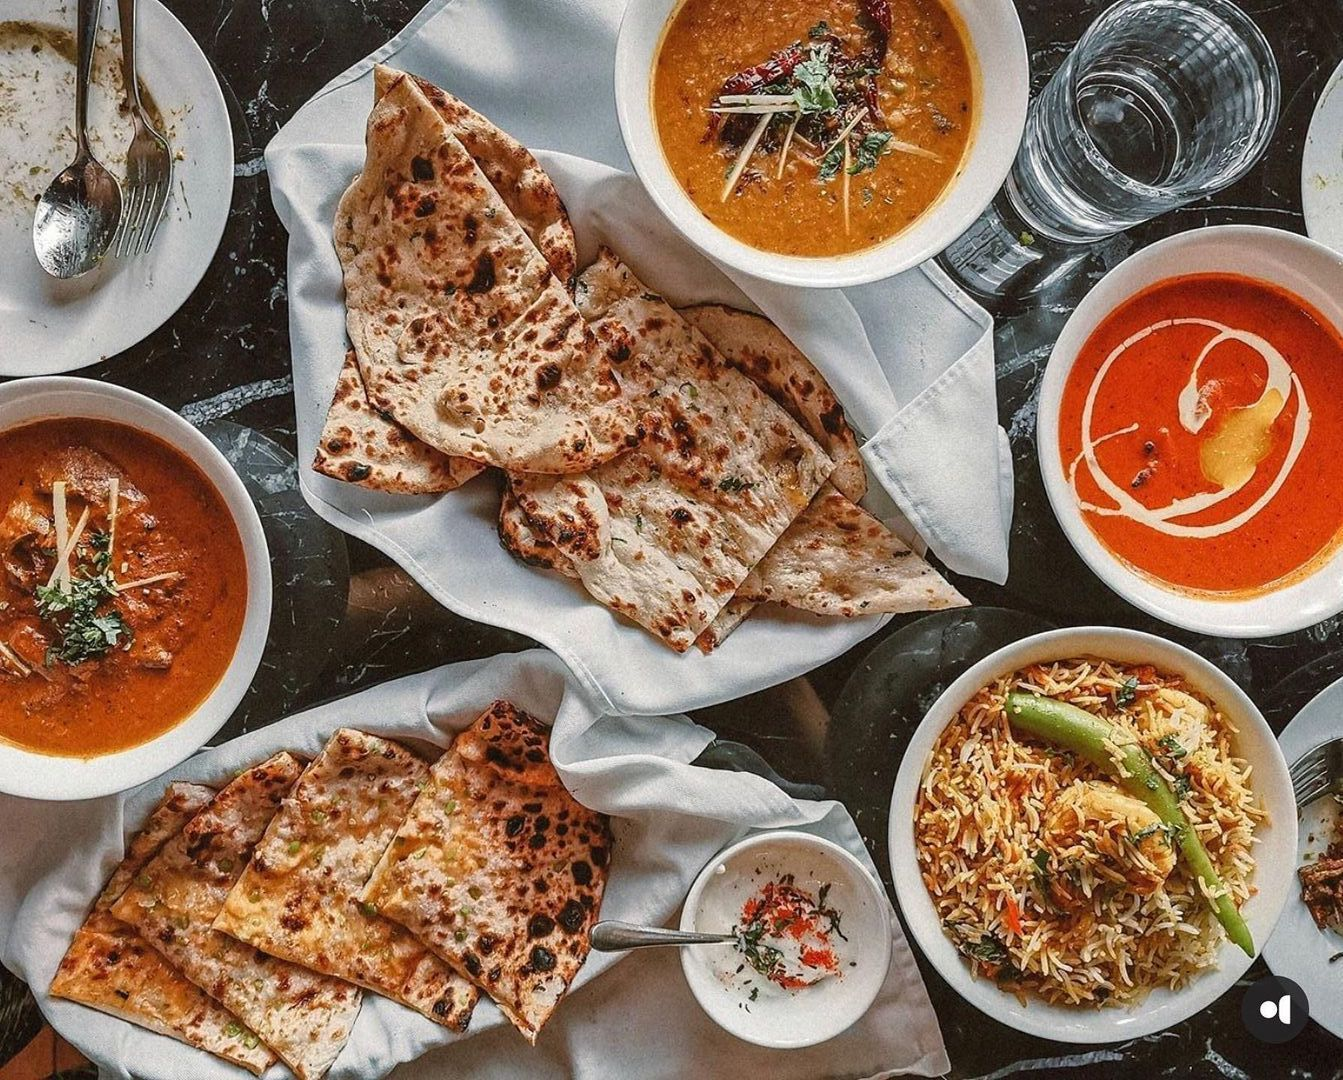 Indian food from Mantra Bistro